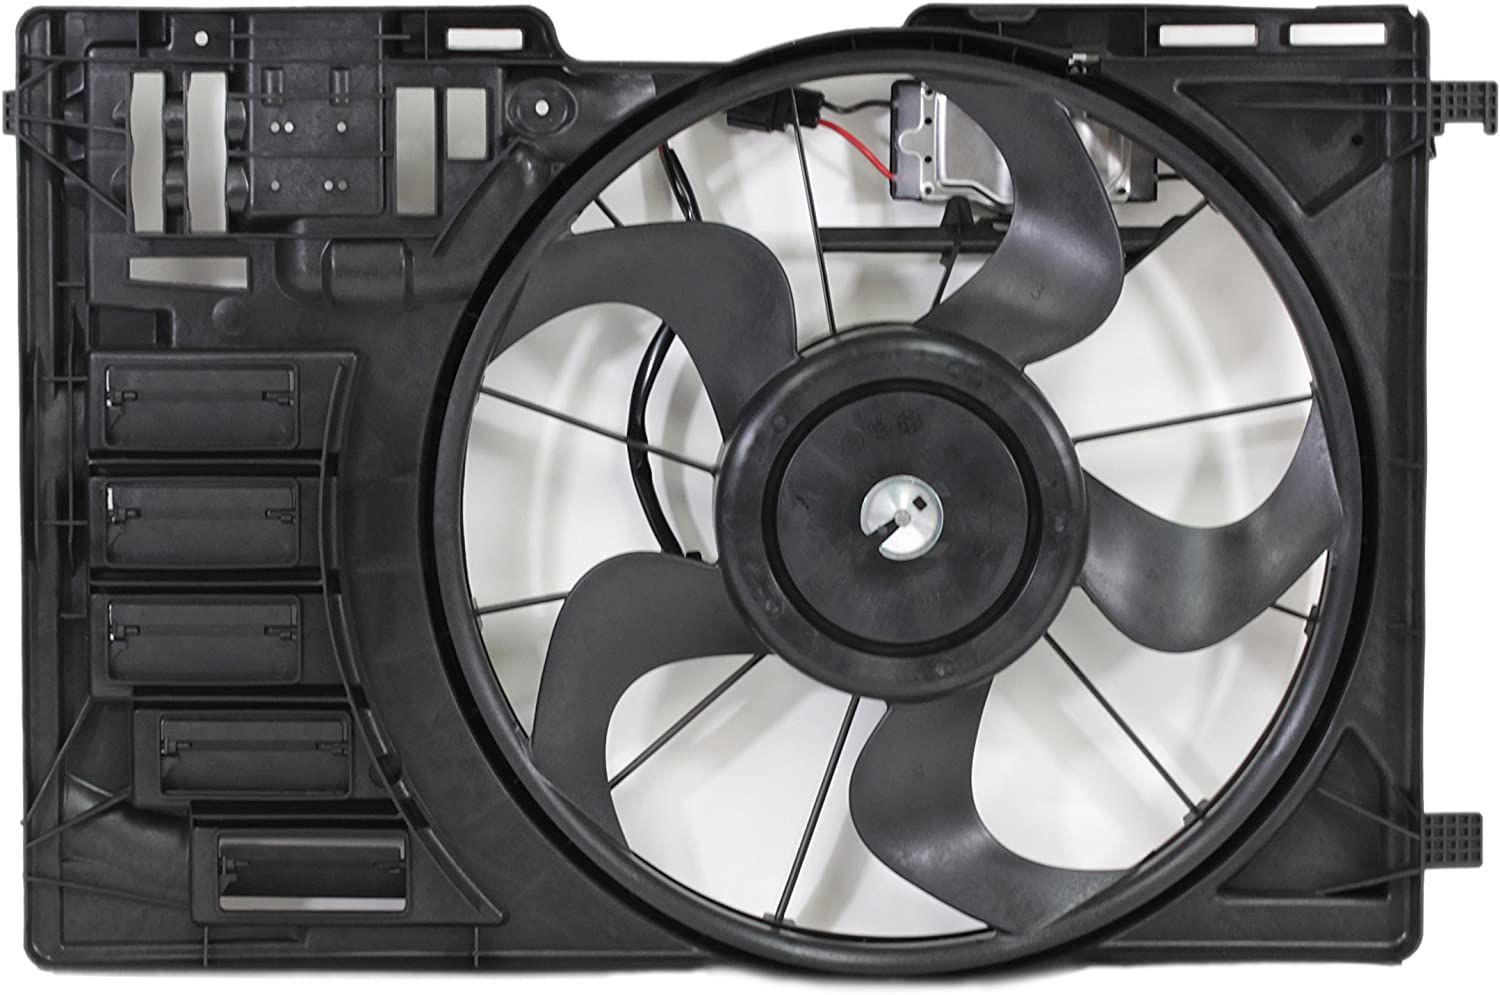 Dual Radiator and Condenser Fan Assembly - Cooling Direct For/Fit FO3115188 13-June'15 Ford Escape 2.0L Turbo WITH Fan Control Module